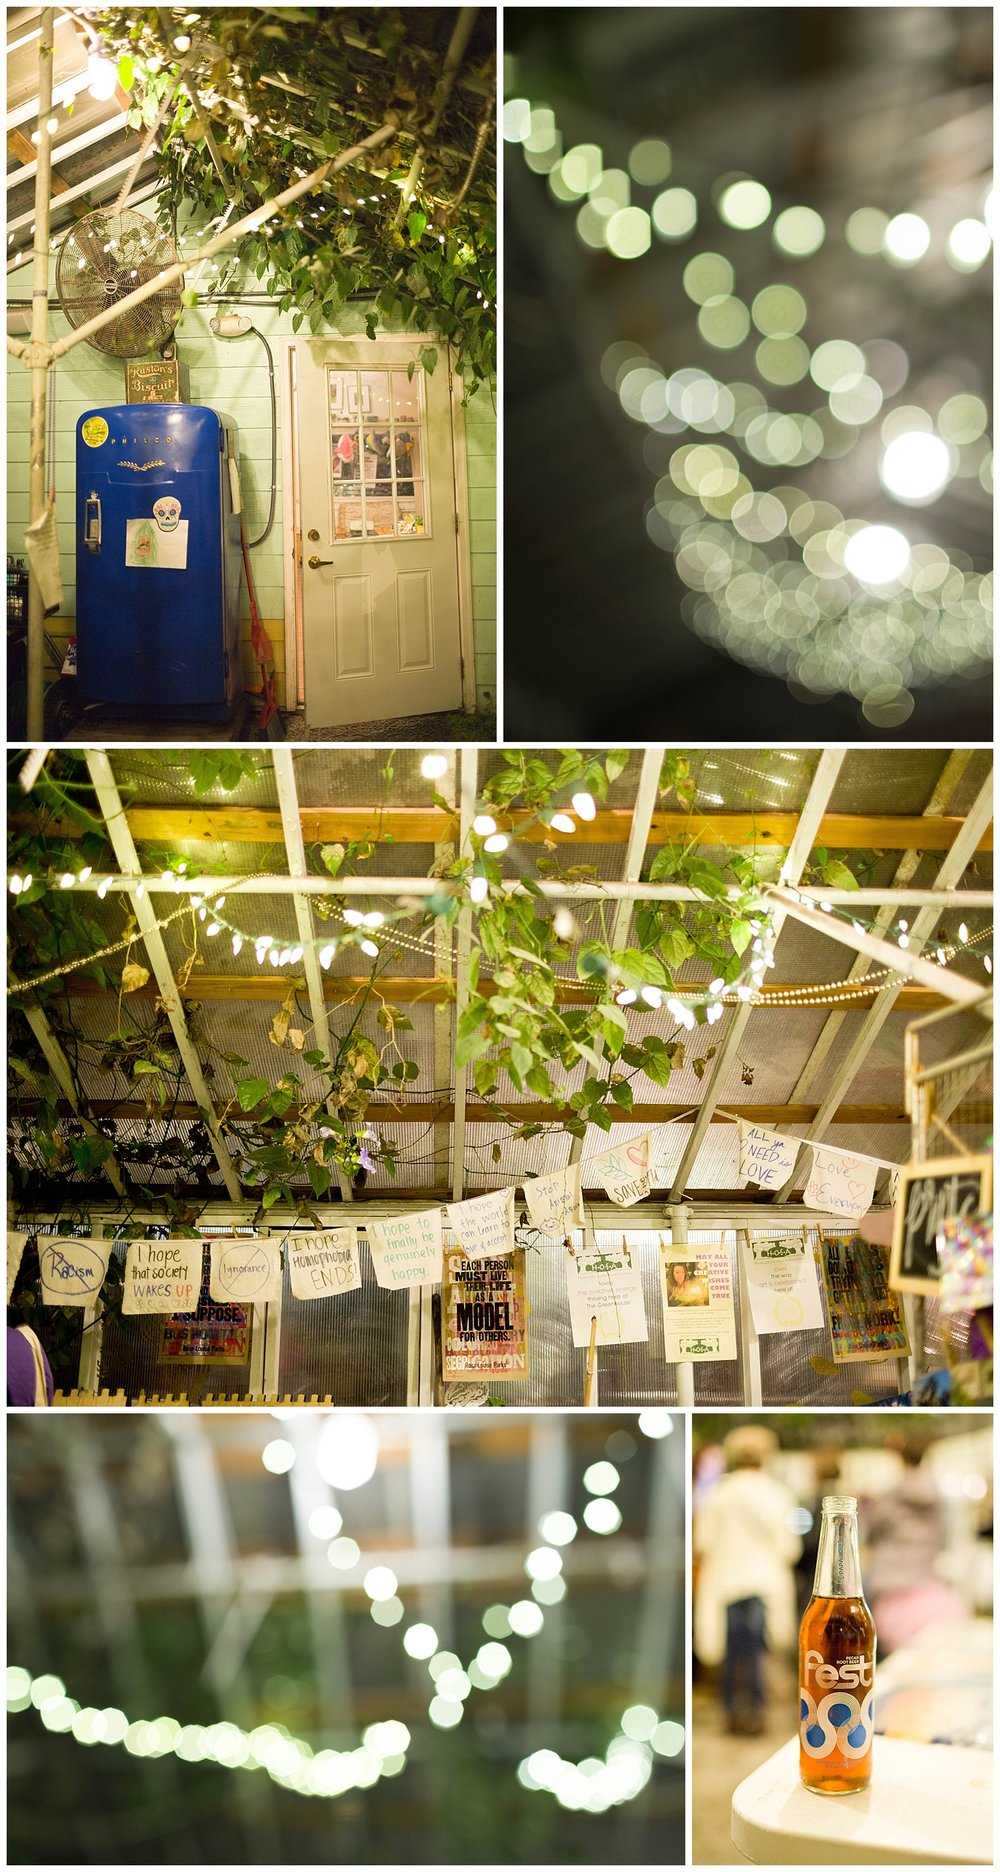 Greenhouse on Porter, Ocean Springs, photos by Uninvented Colors Photography